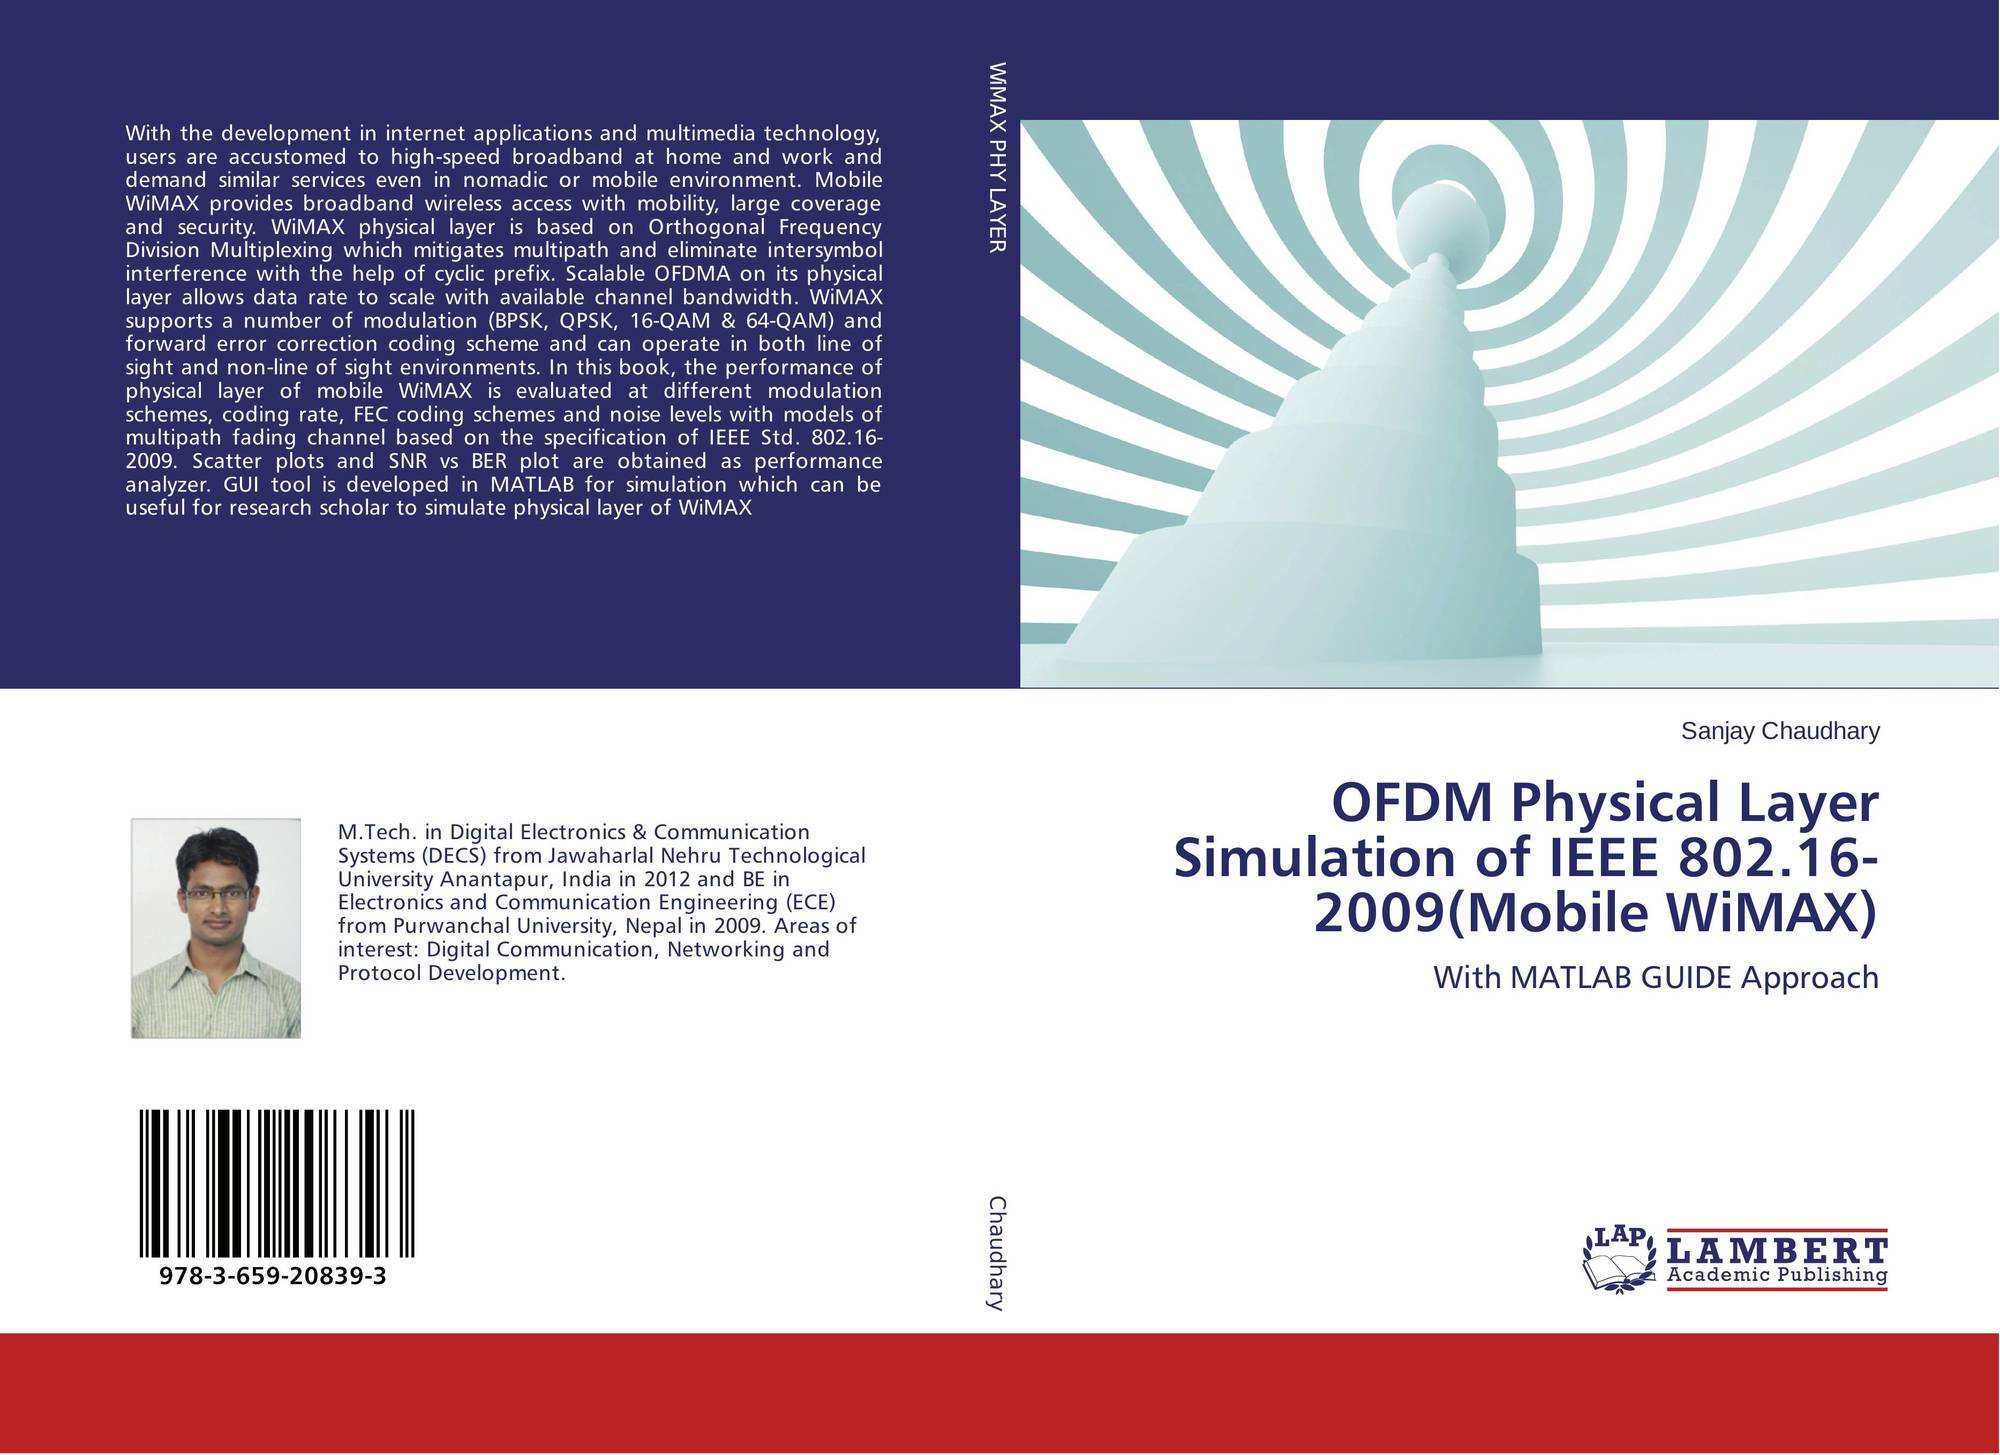 OFDM Physical Layer Simulation of IEEE 802 16-2009(Mobile